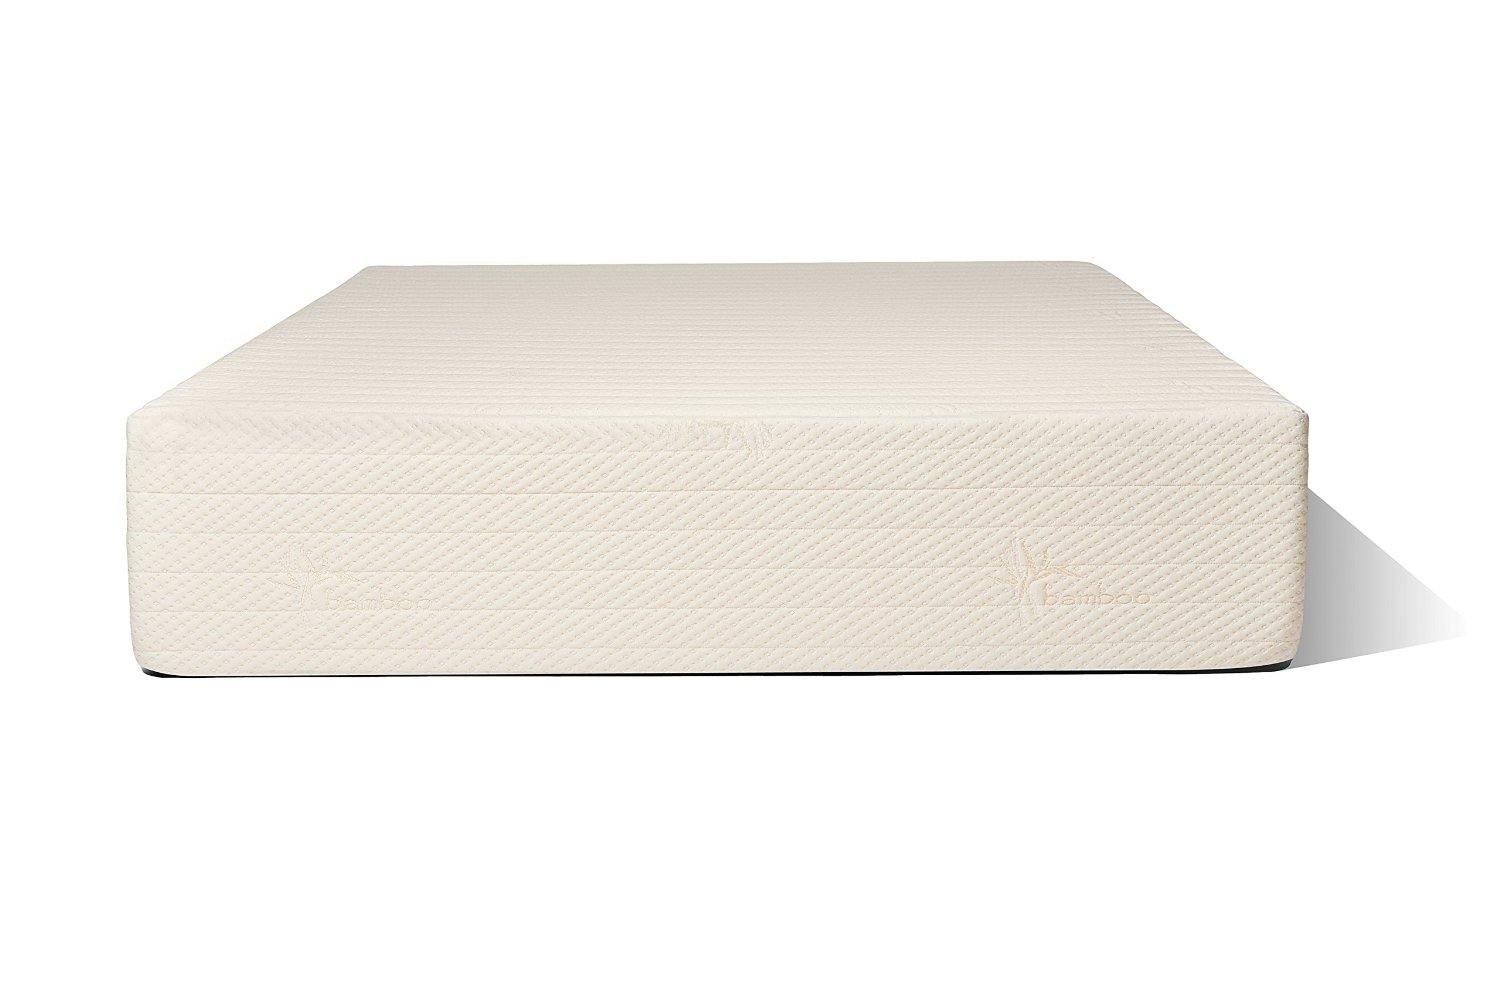 Top 10 Best Cheap Full Size Mattress Reviews — Which One Is the Best to Buy in 2020?